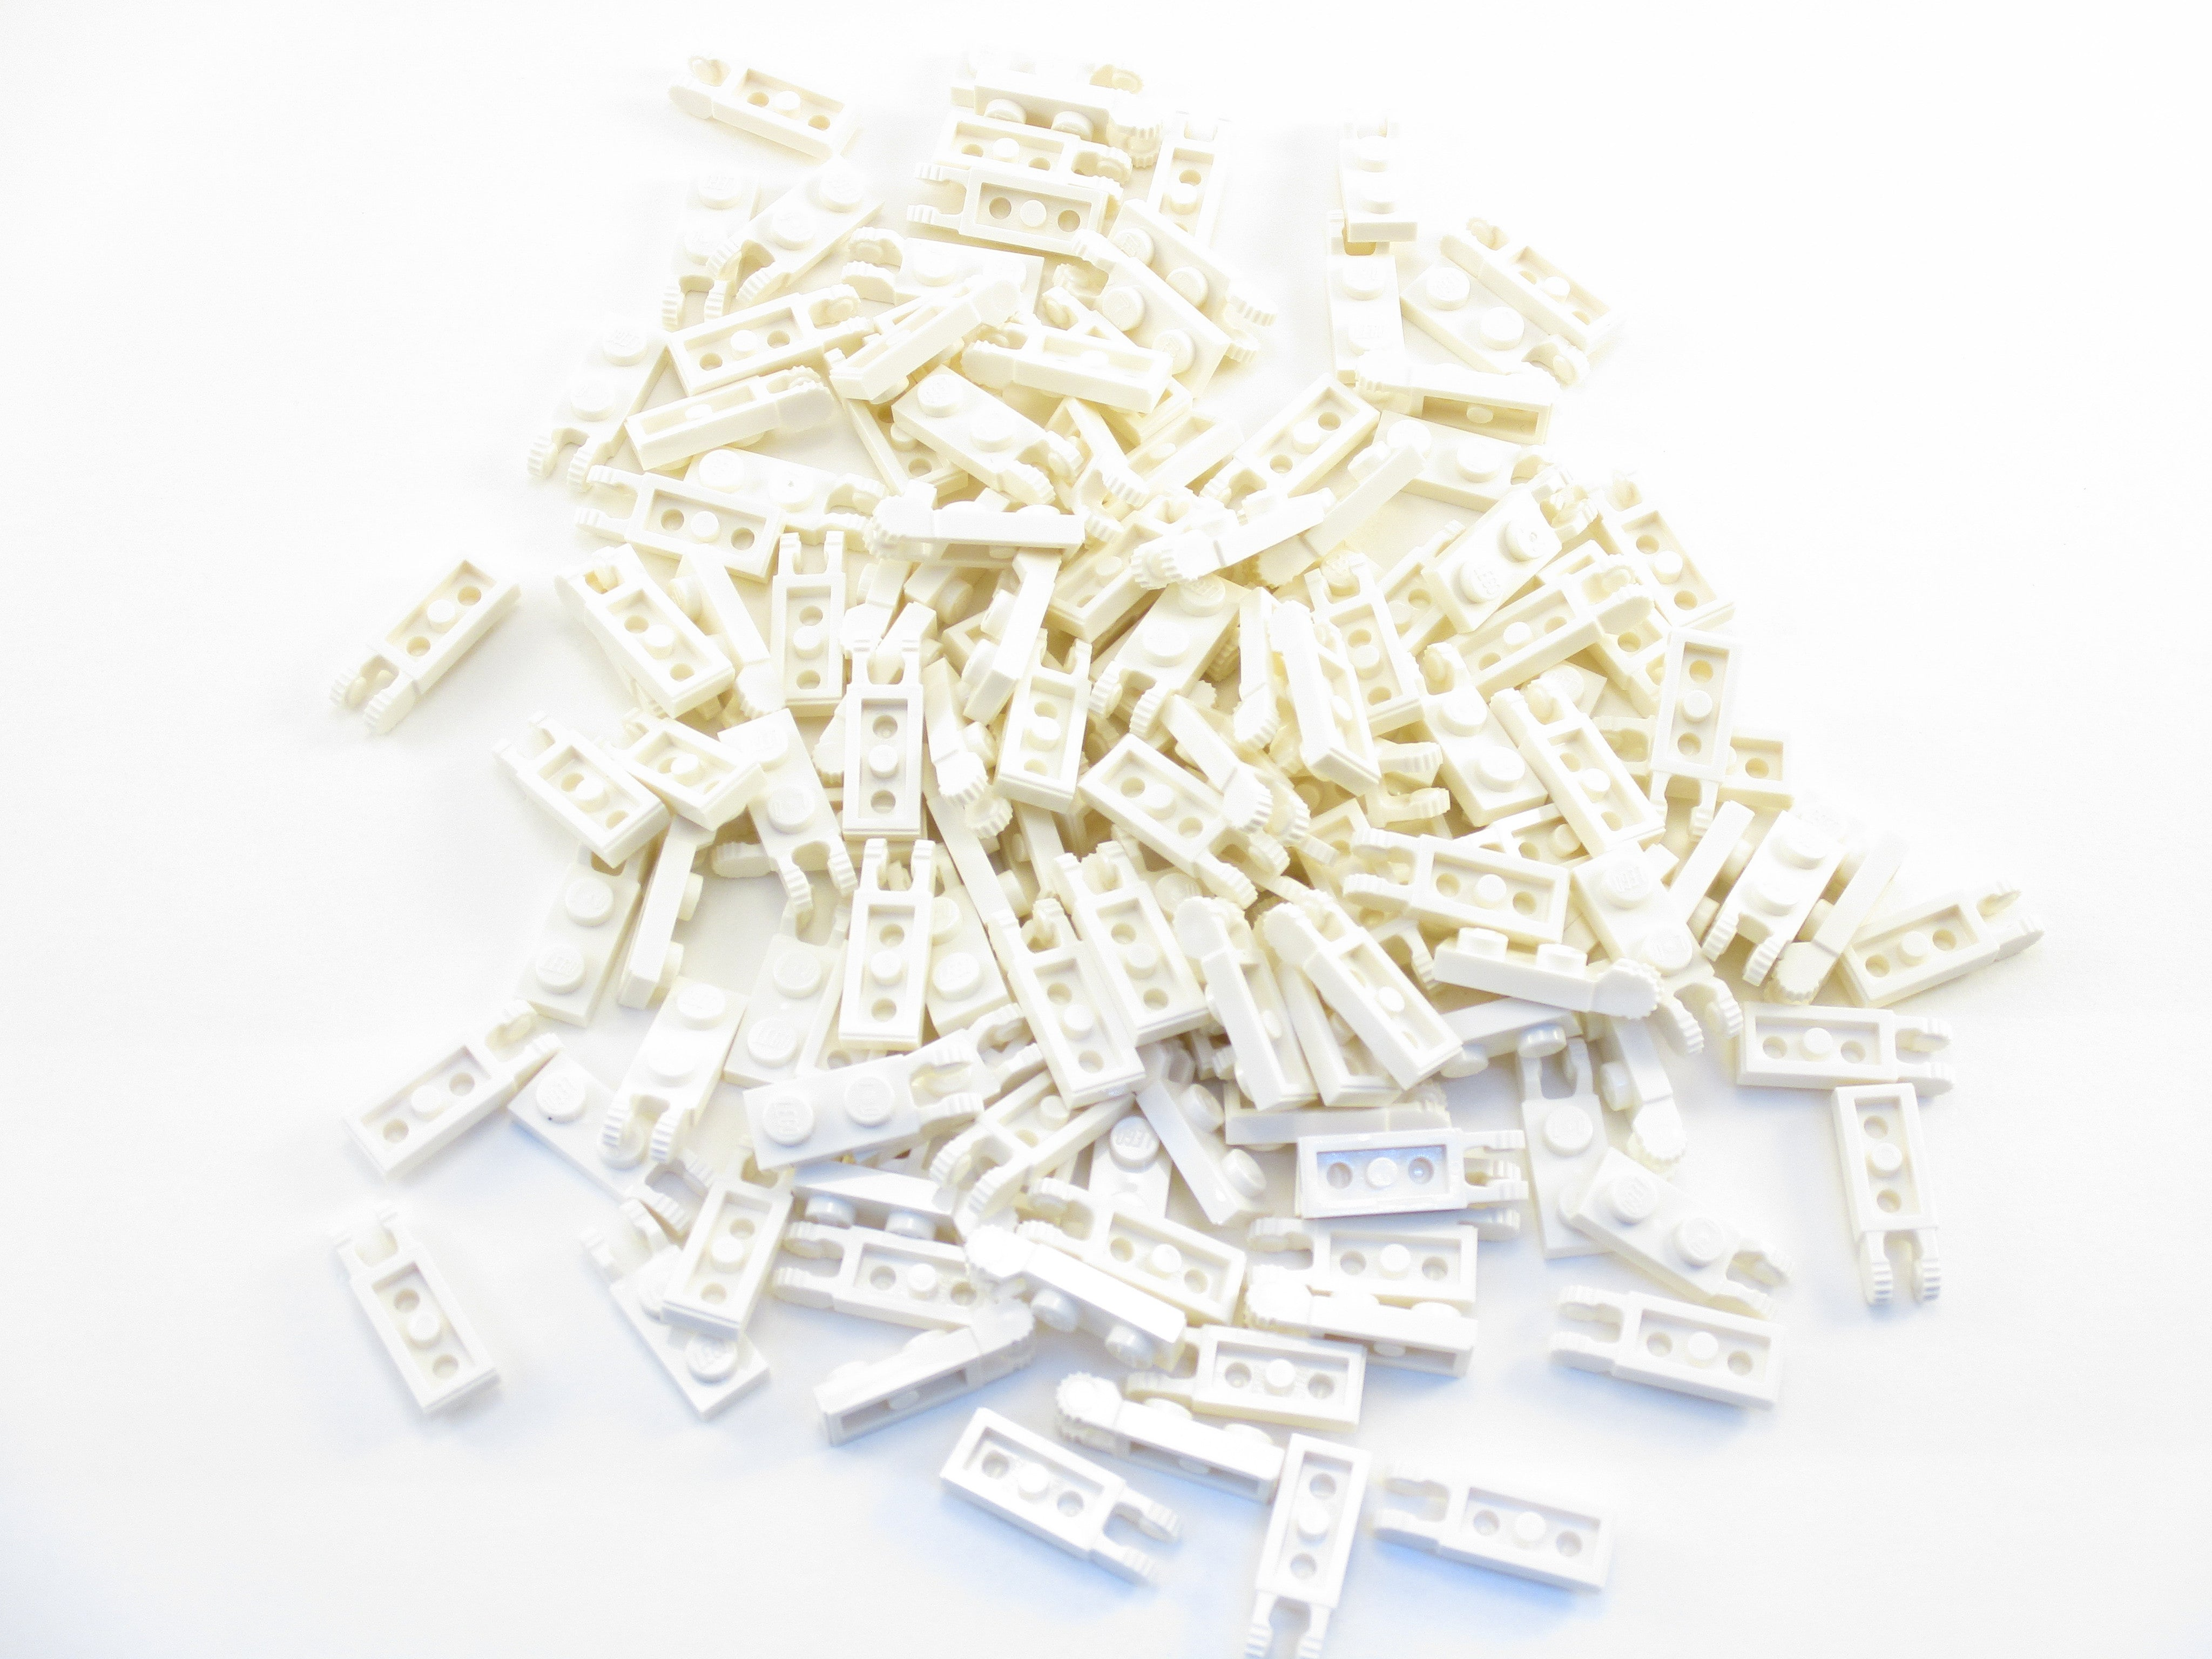 LEGO White Hinge Plate 1x2 Locking 2 Fingers Lot of 100 Parts Pieces 44302